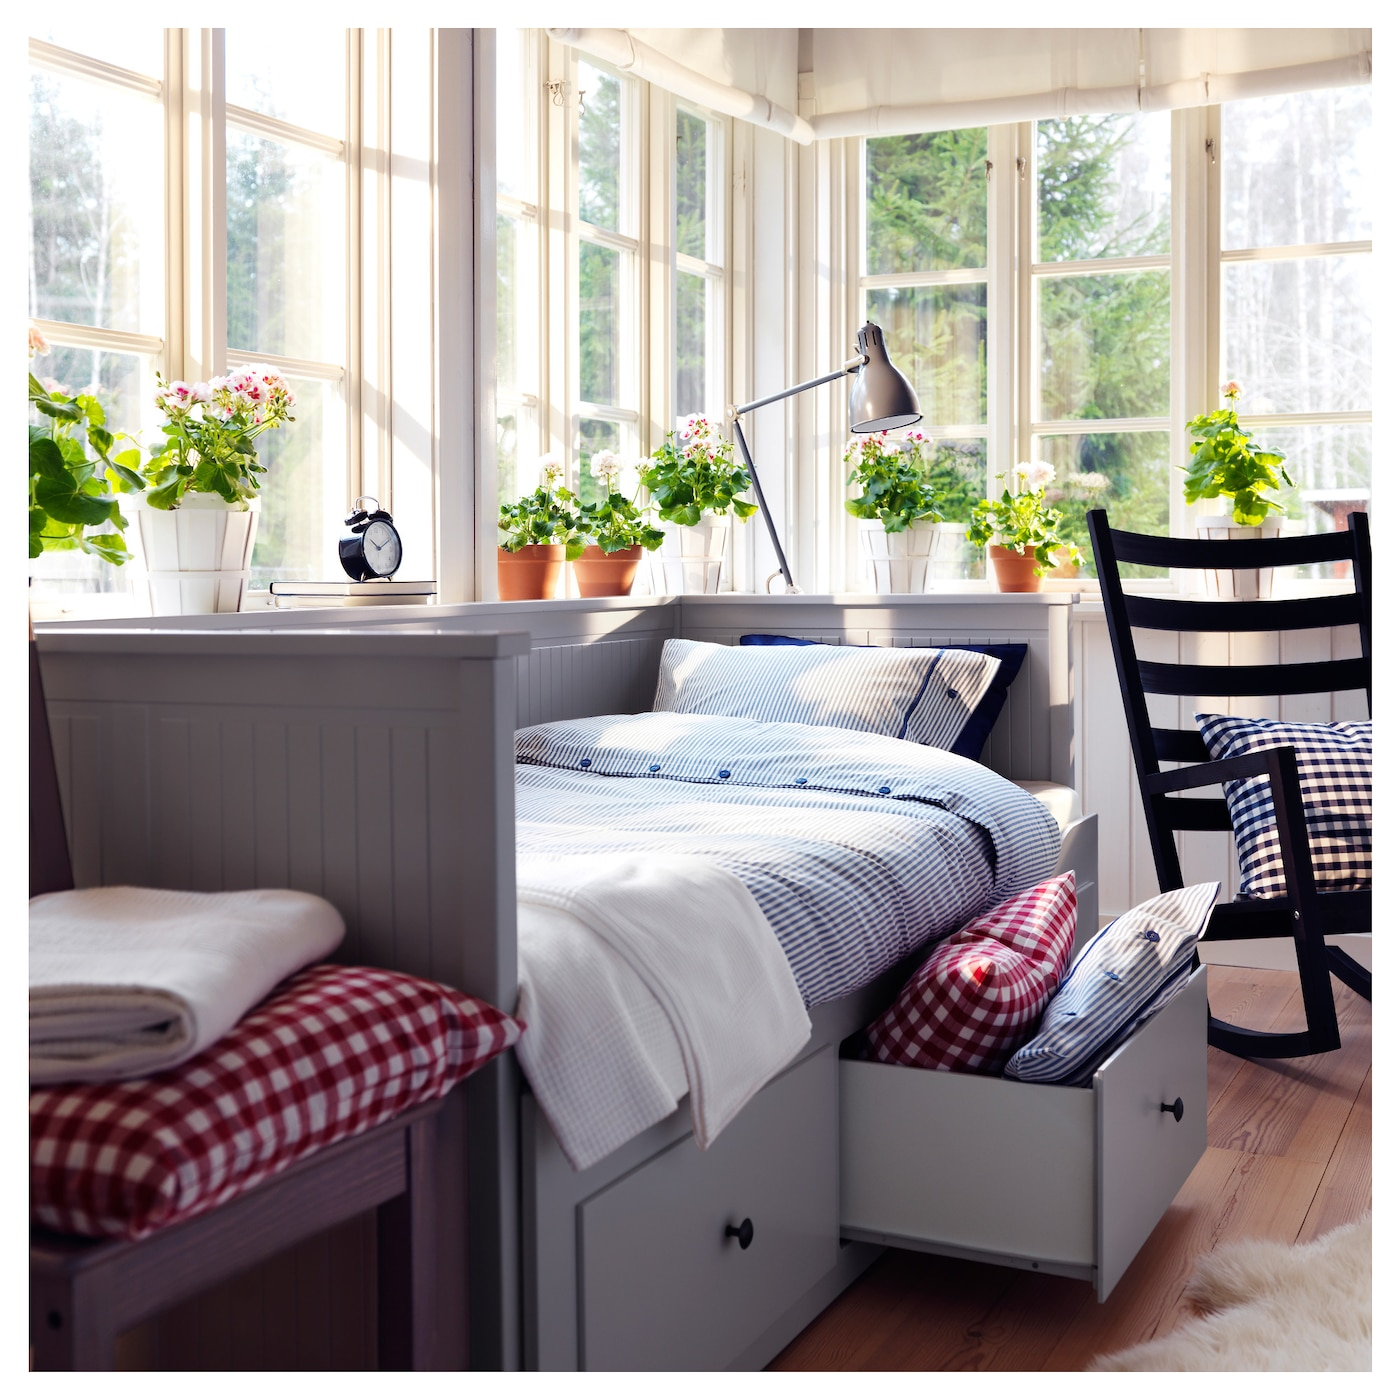 - HEMNES Daybed Frame With 3 Drawers, Gray - IKEA